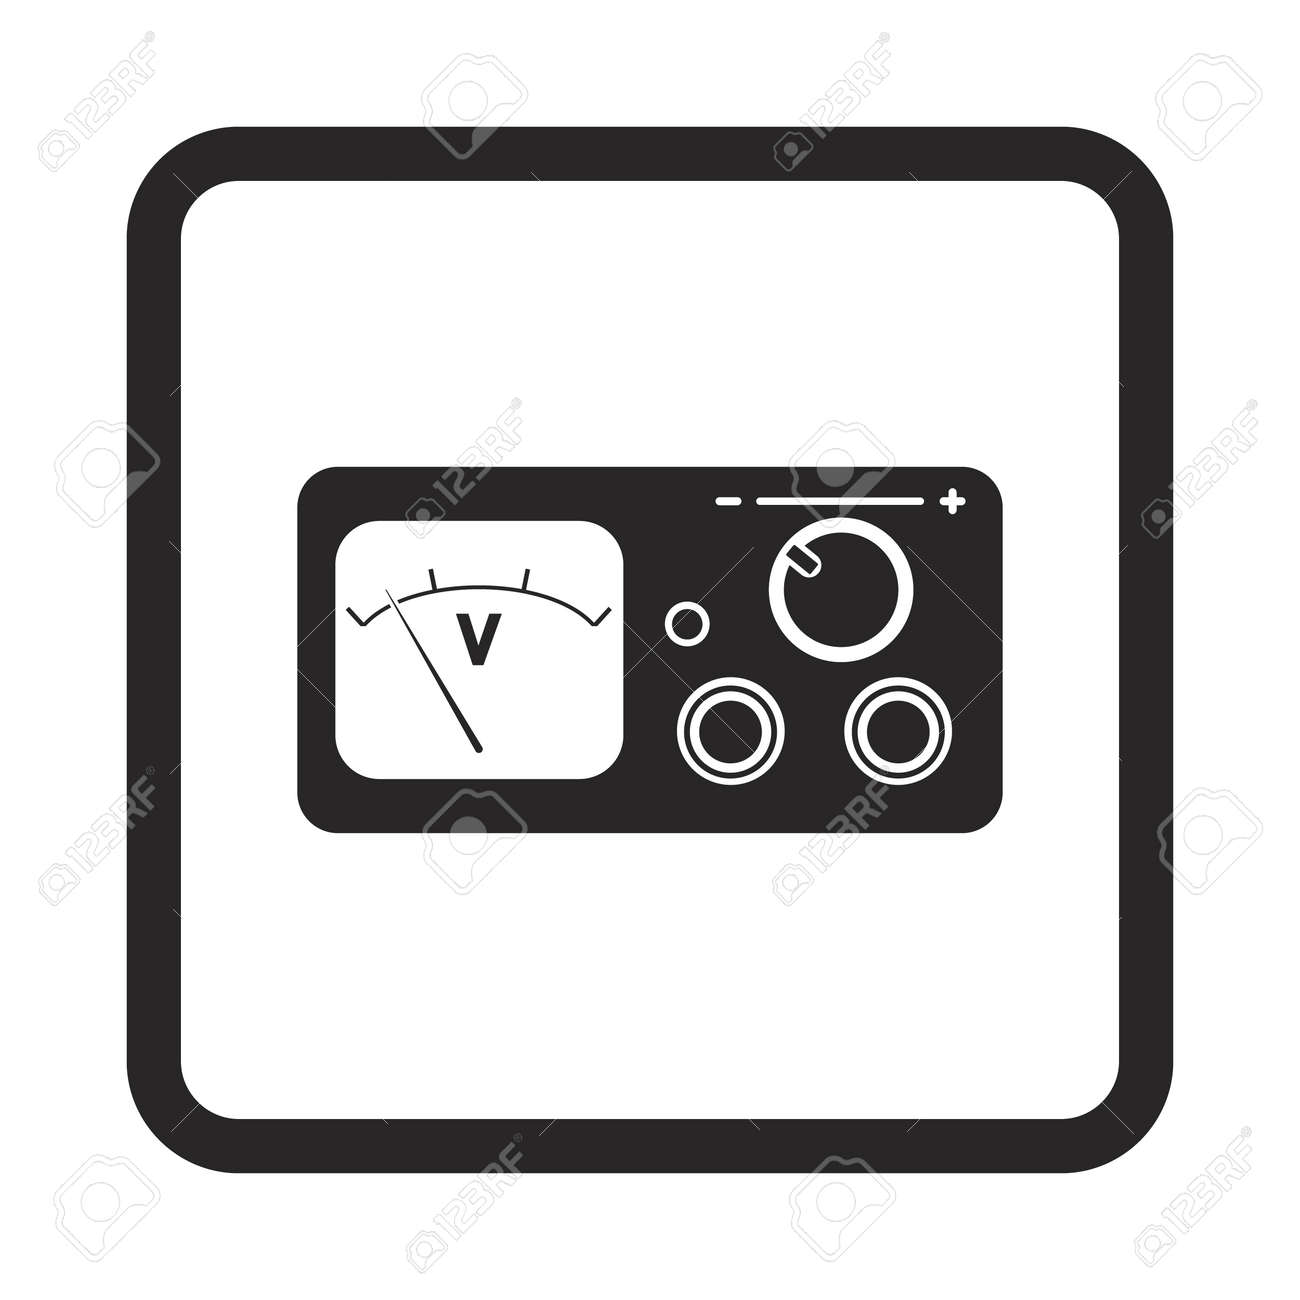 Power supply icon royalty free cliparts vectors and stock power supply icon stock vector 52957359 buycottarizona